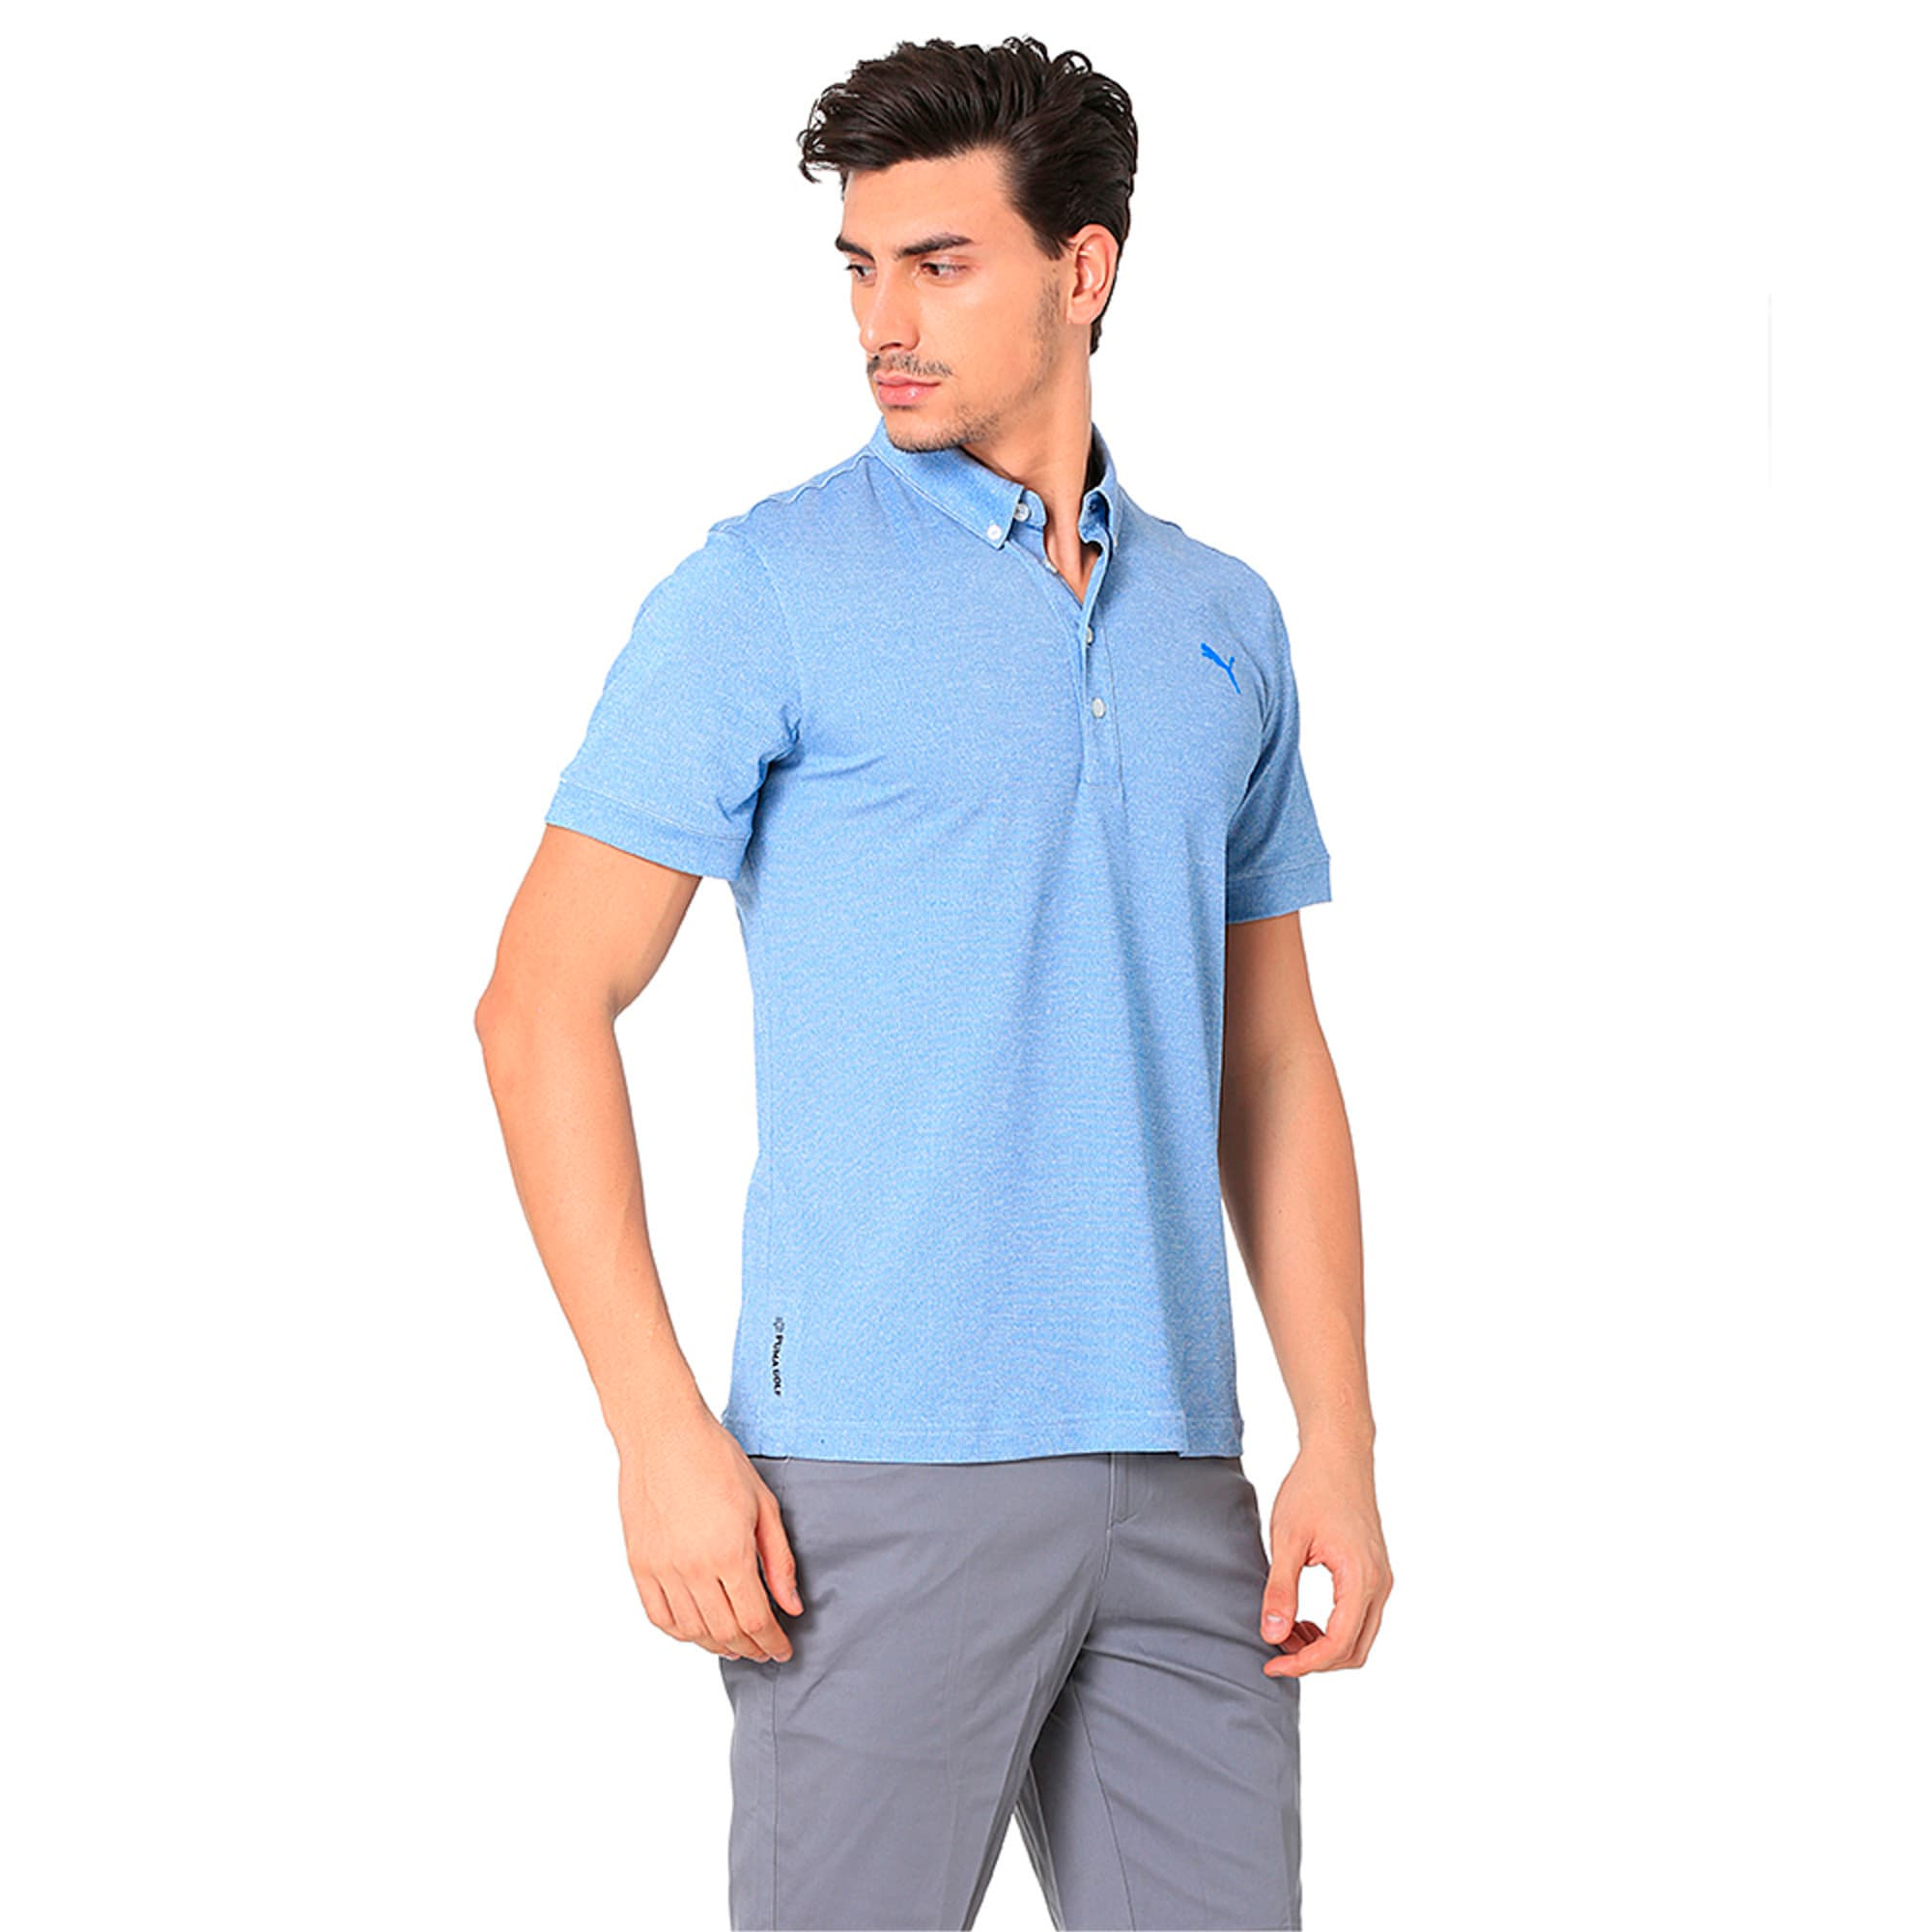 Thumbnail 5 of Golf Men's Tailored Oxford Heather Polo, EBL Heather, medium-IND